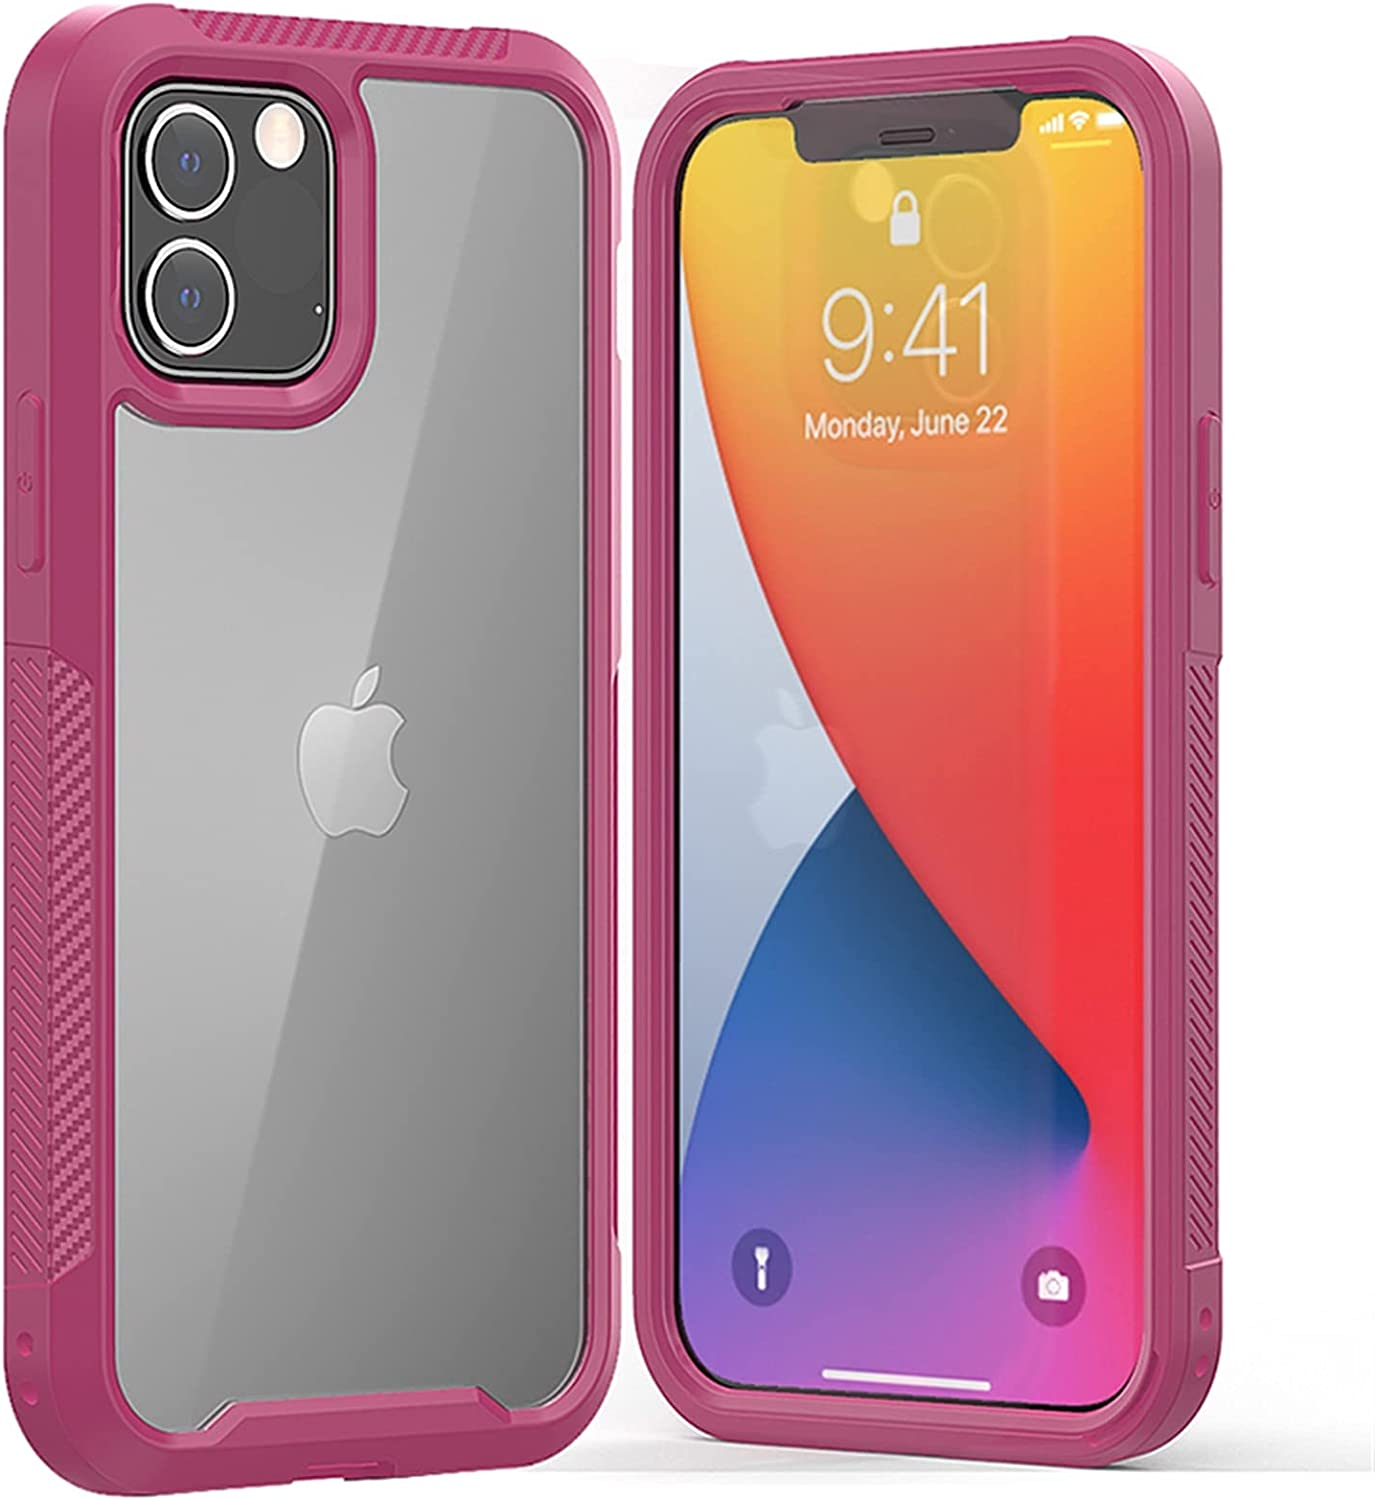 LRJBFC for Max 47% OFF iPhone 12 Mini 11Pro X Hyb Armor 1 2 XR in XS Fresno Mall